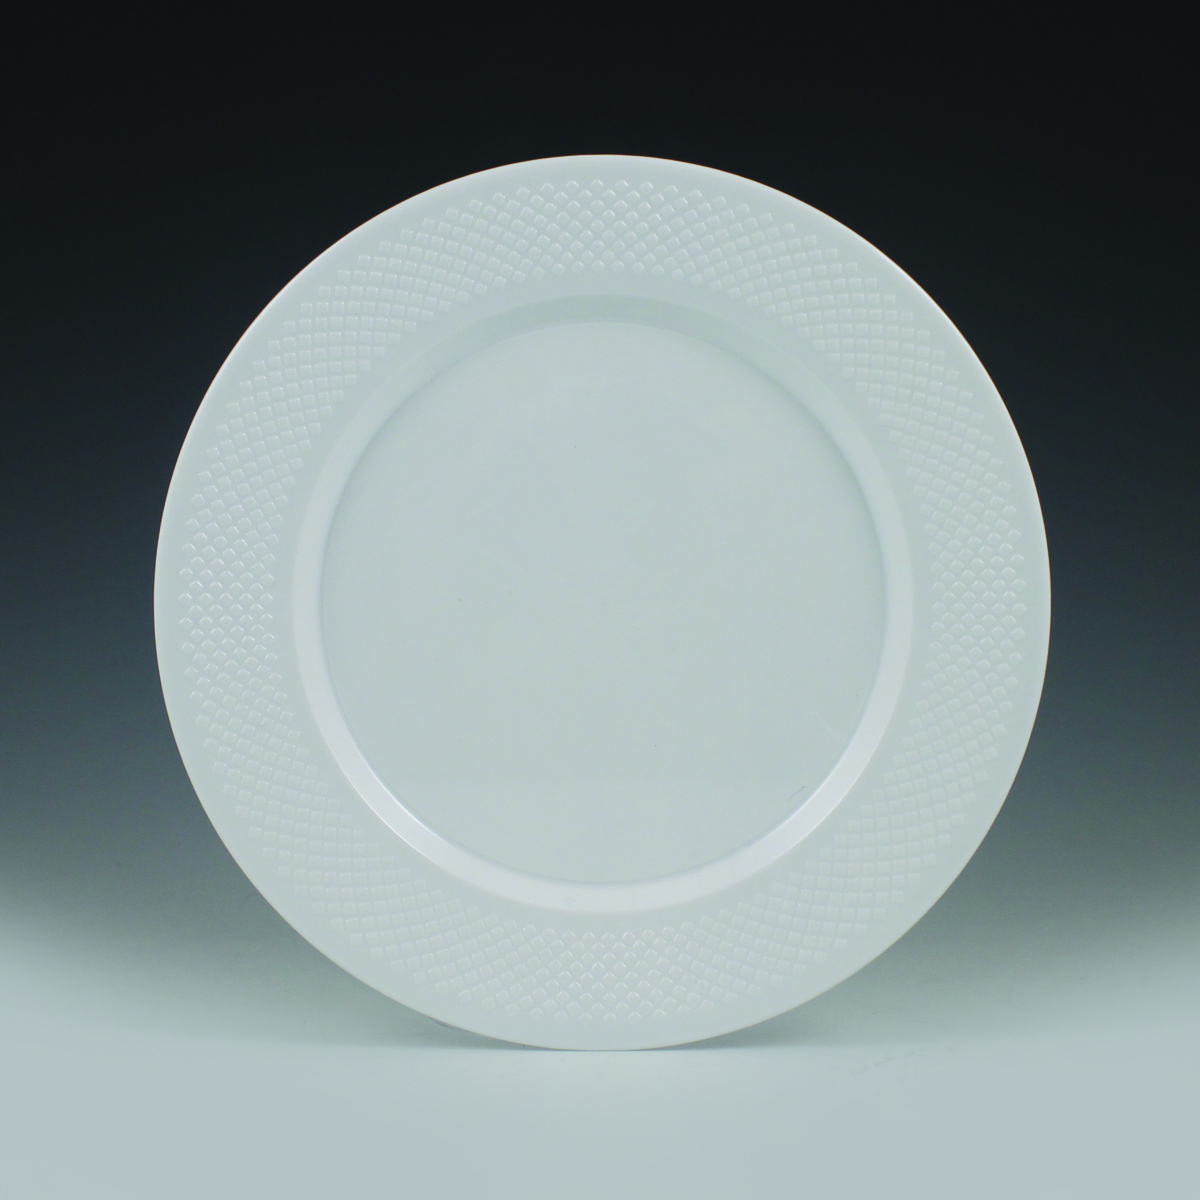 7.5  Concord Hors du0027Oeuvres Plate | Plastic Cups Utensils Bowls Platters & 7.5